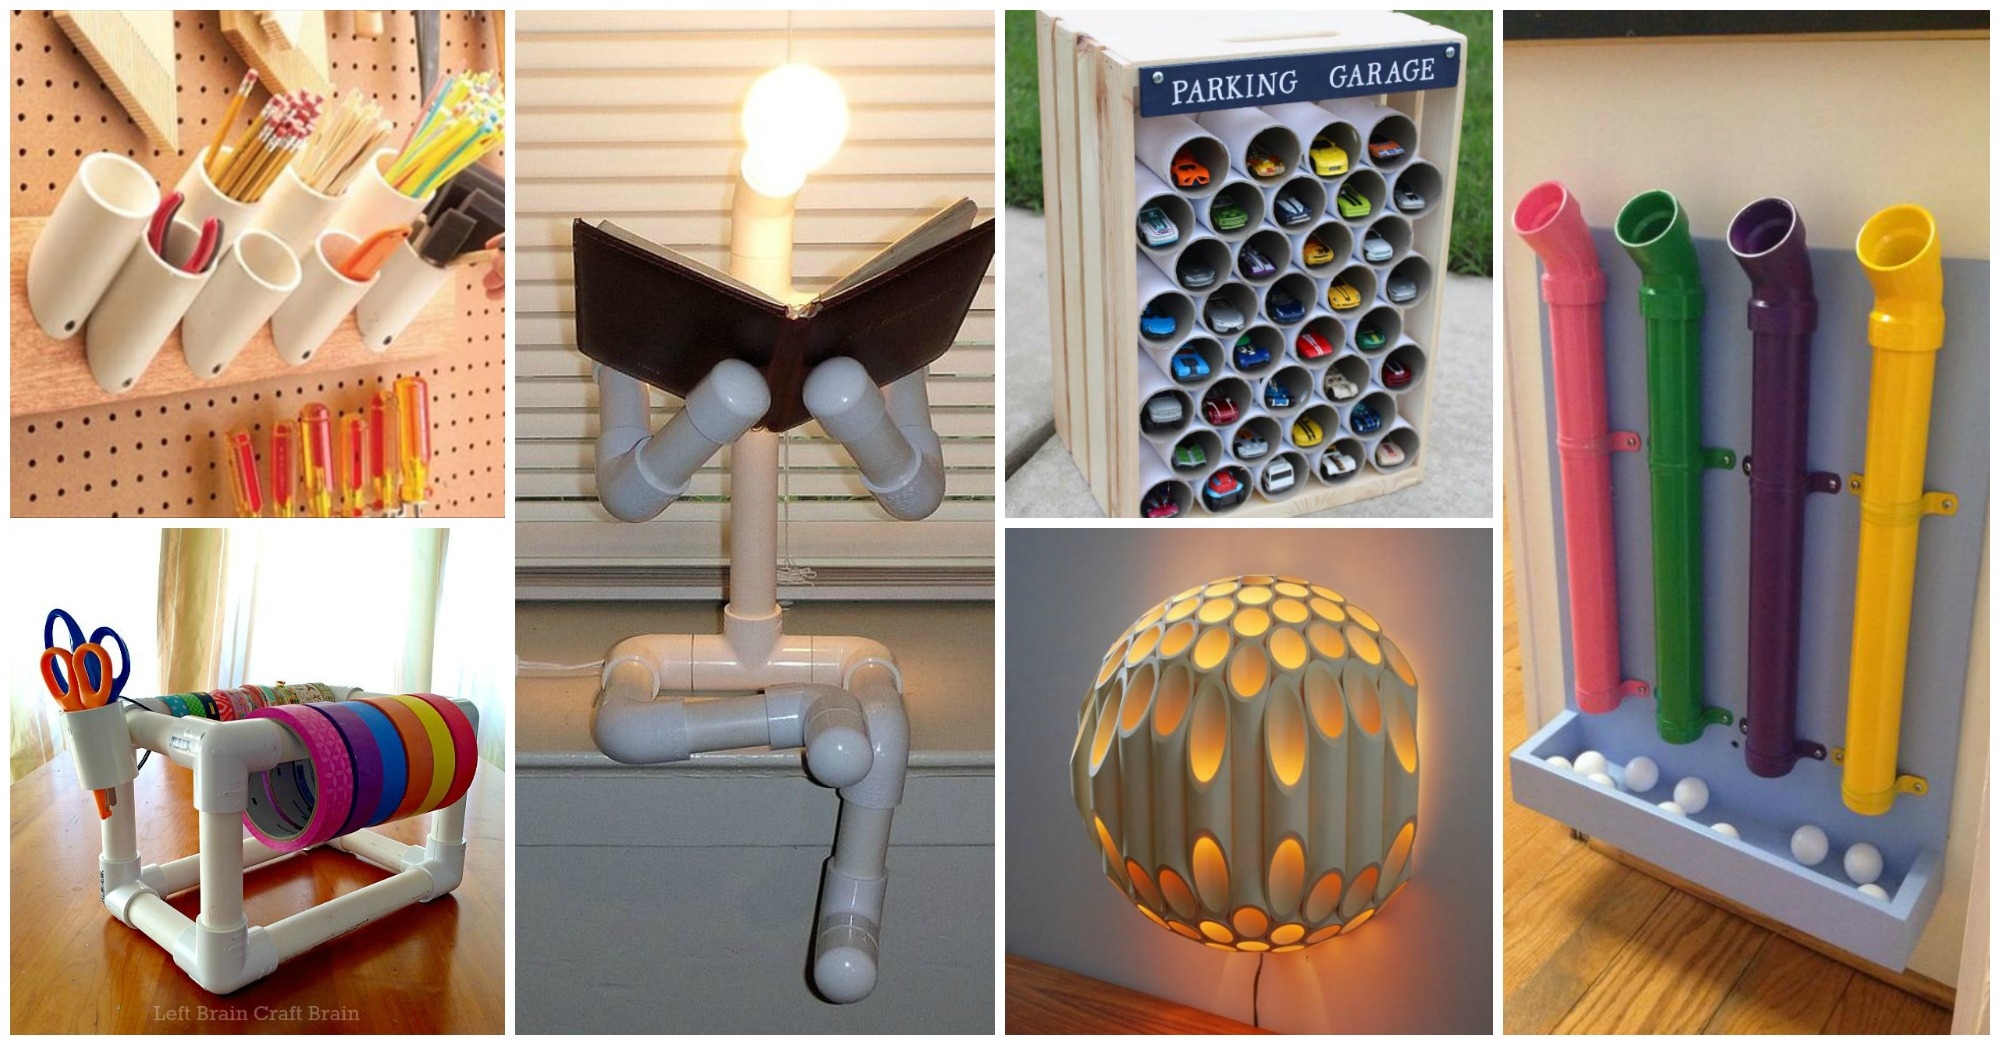 45 Creative Uses Of PVC Pipes In Your Home And Garden